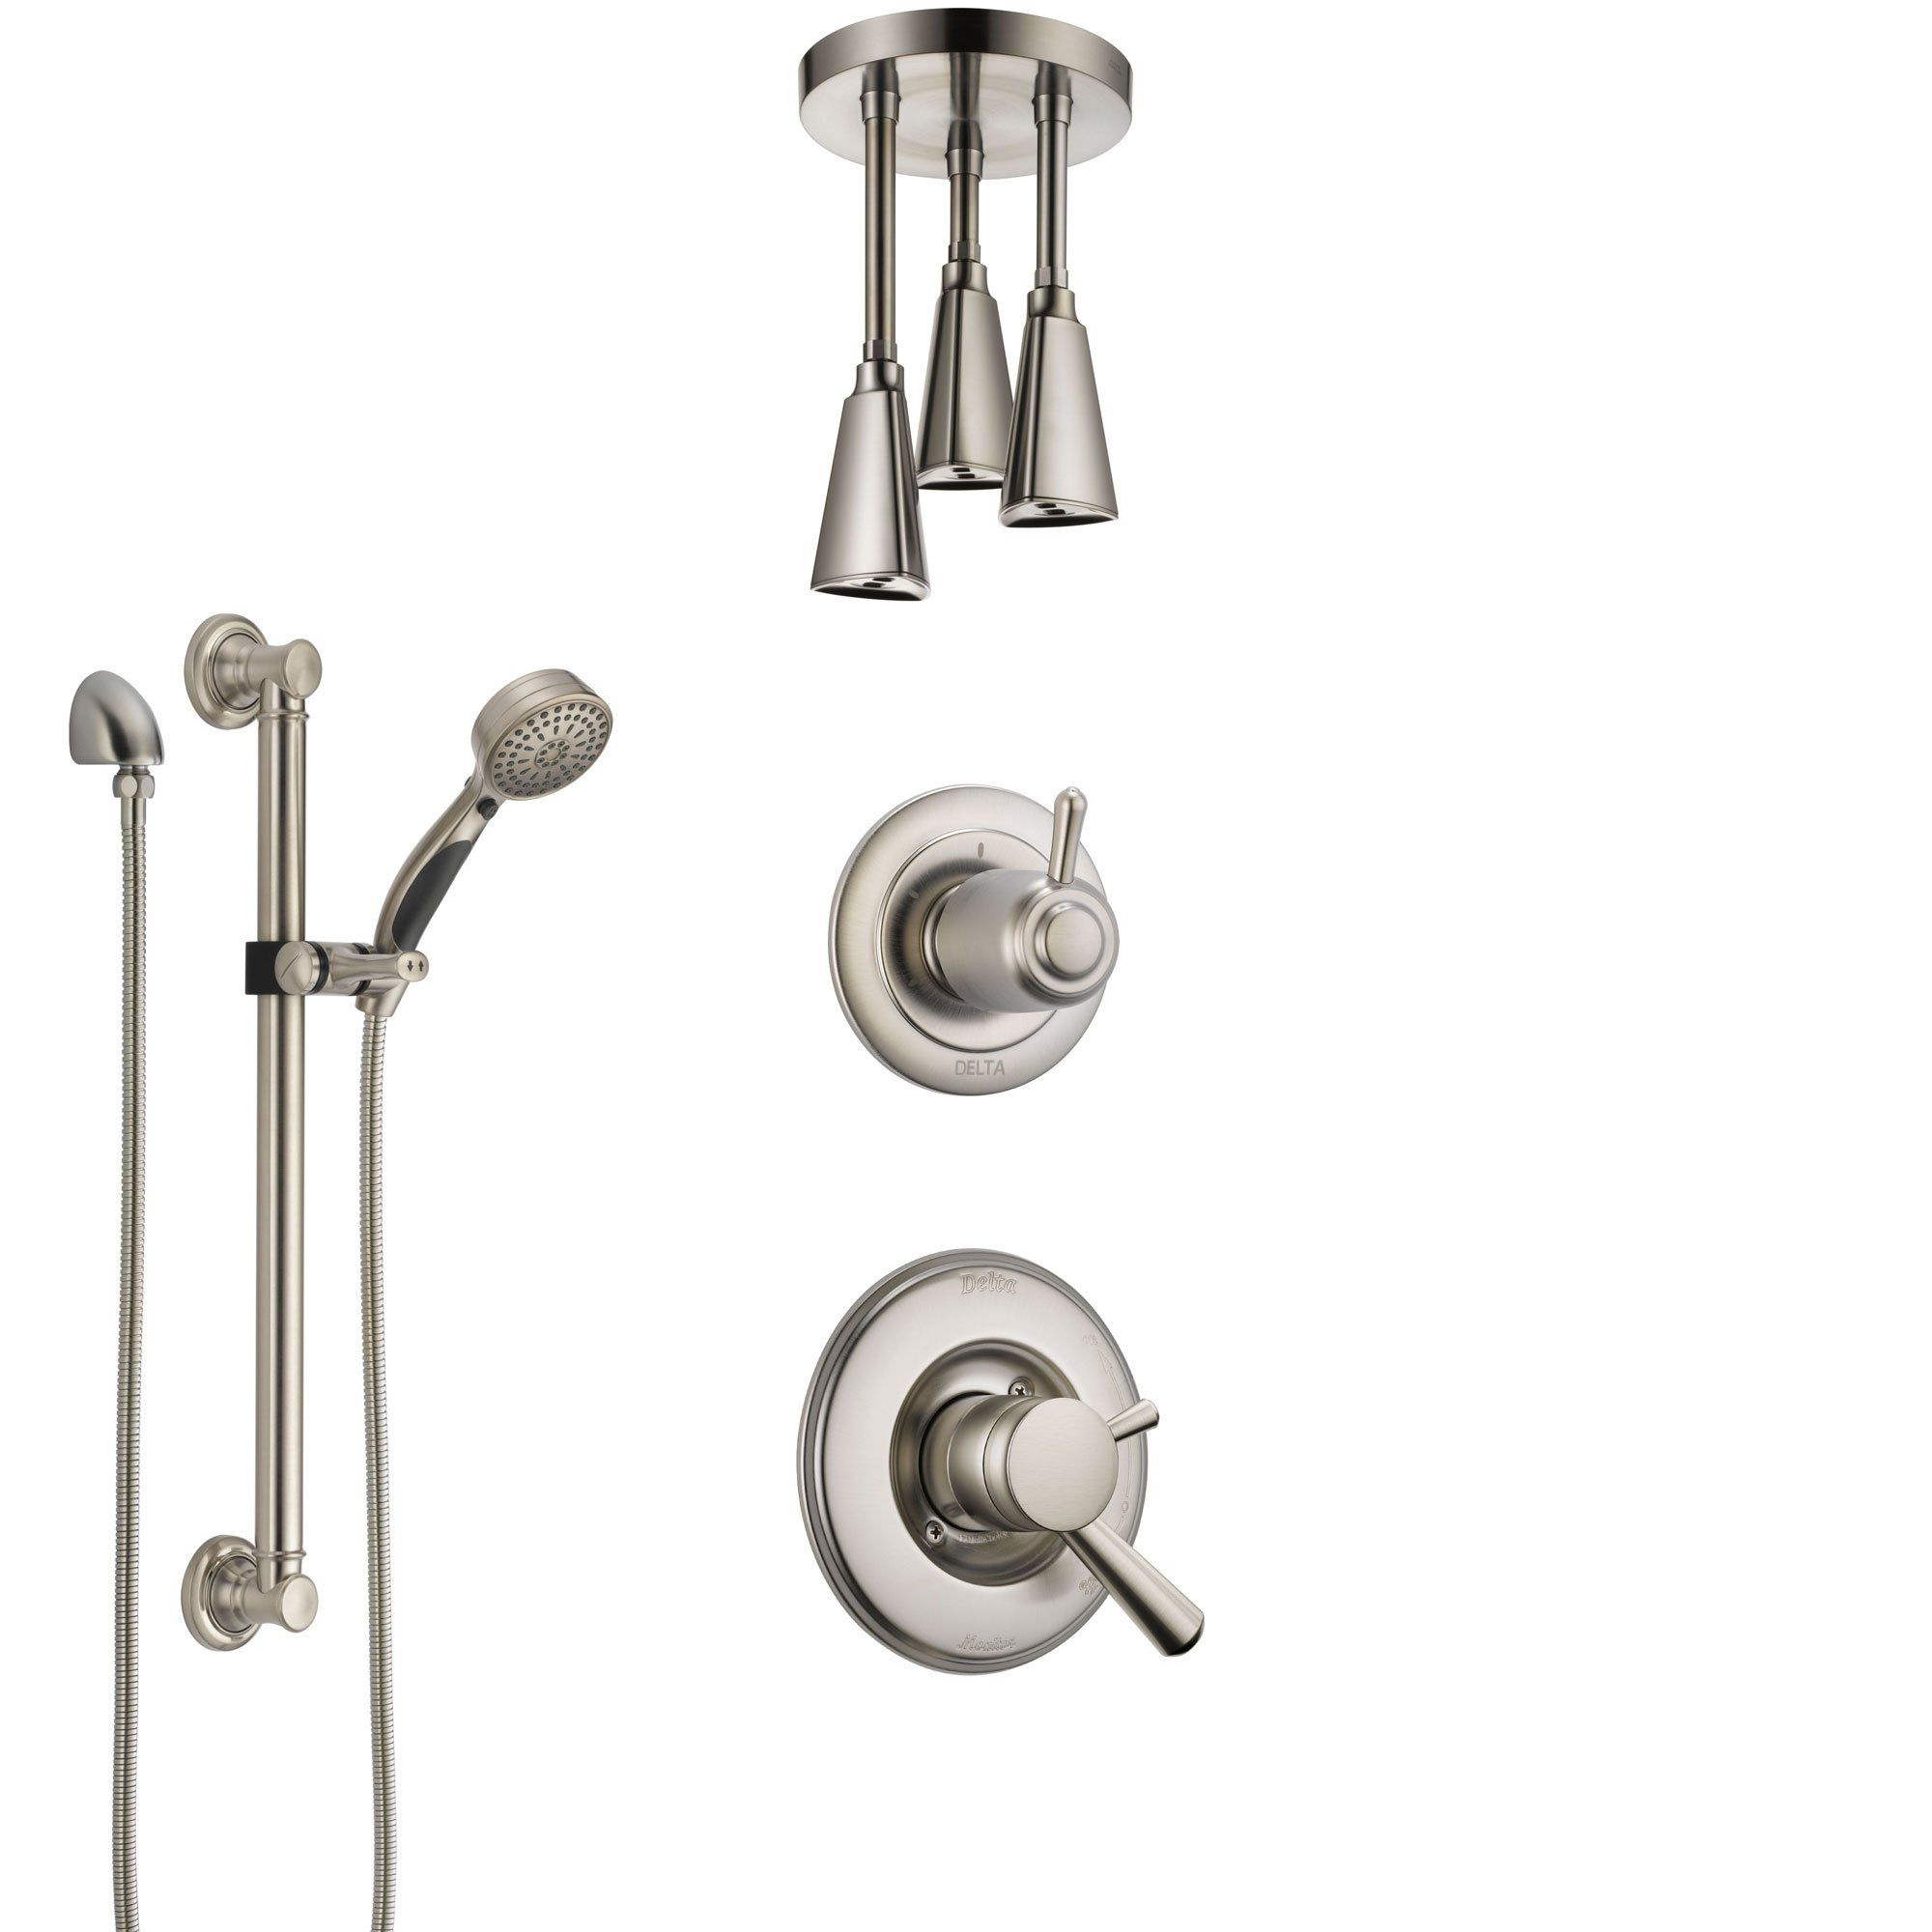 Delta Linden Dual Control Handle Stainless Steel Finish Shower